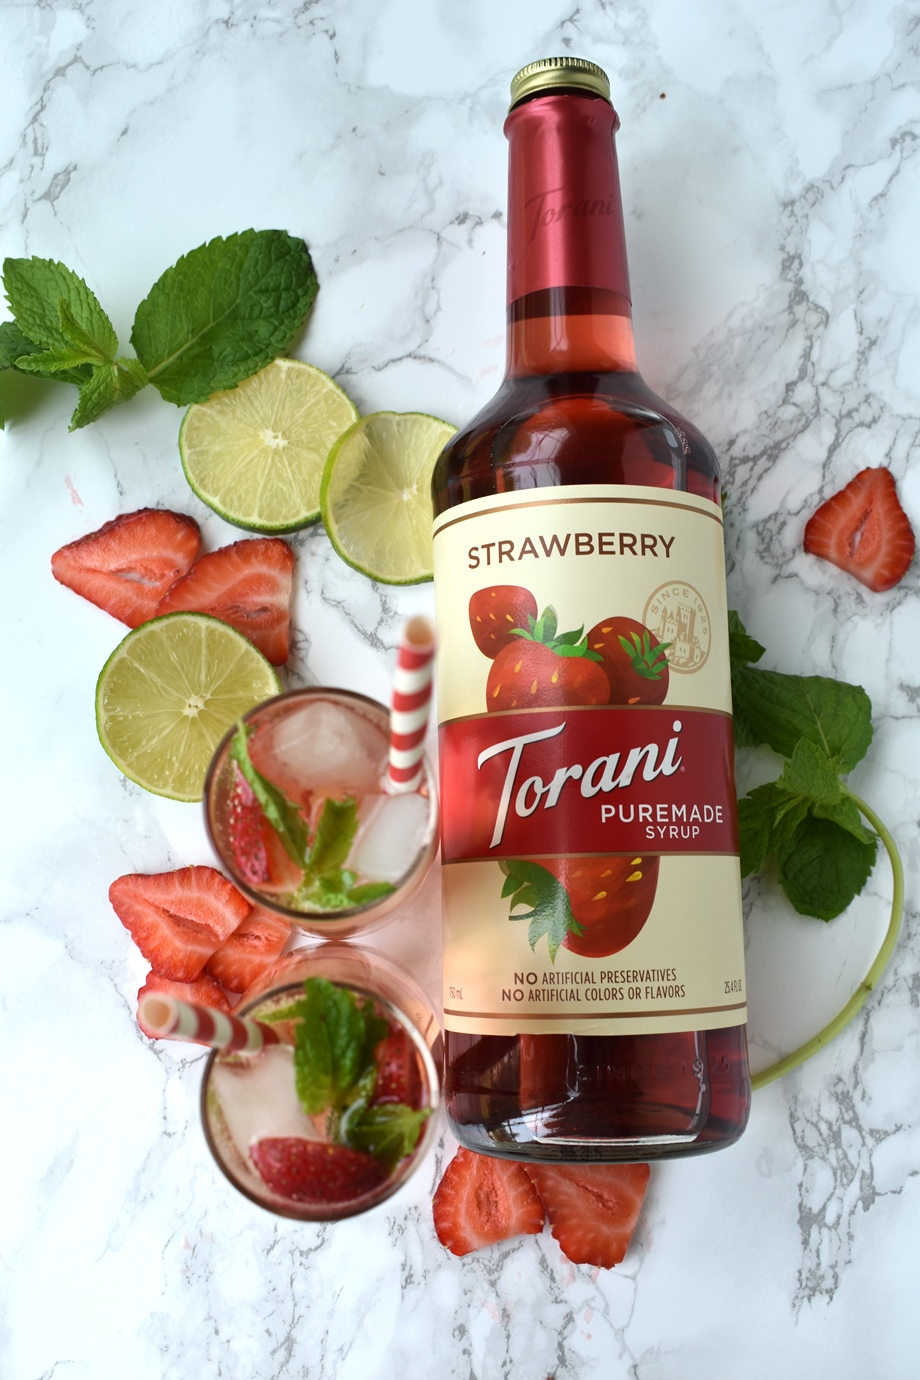 Torani Strawberry Puremade syrup